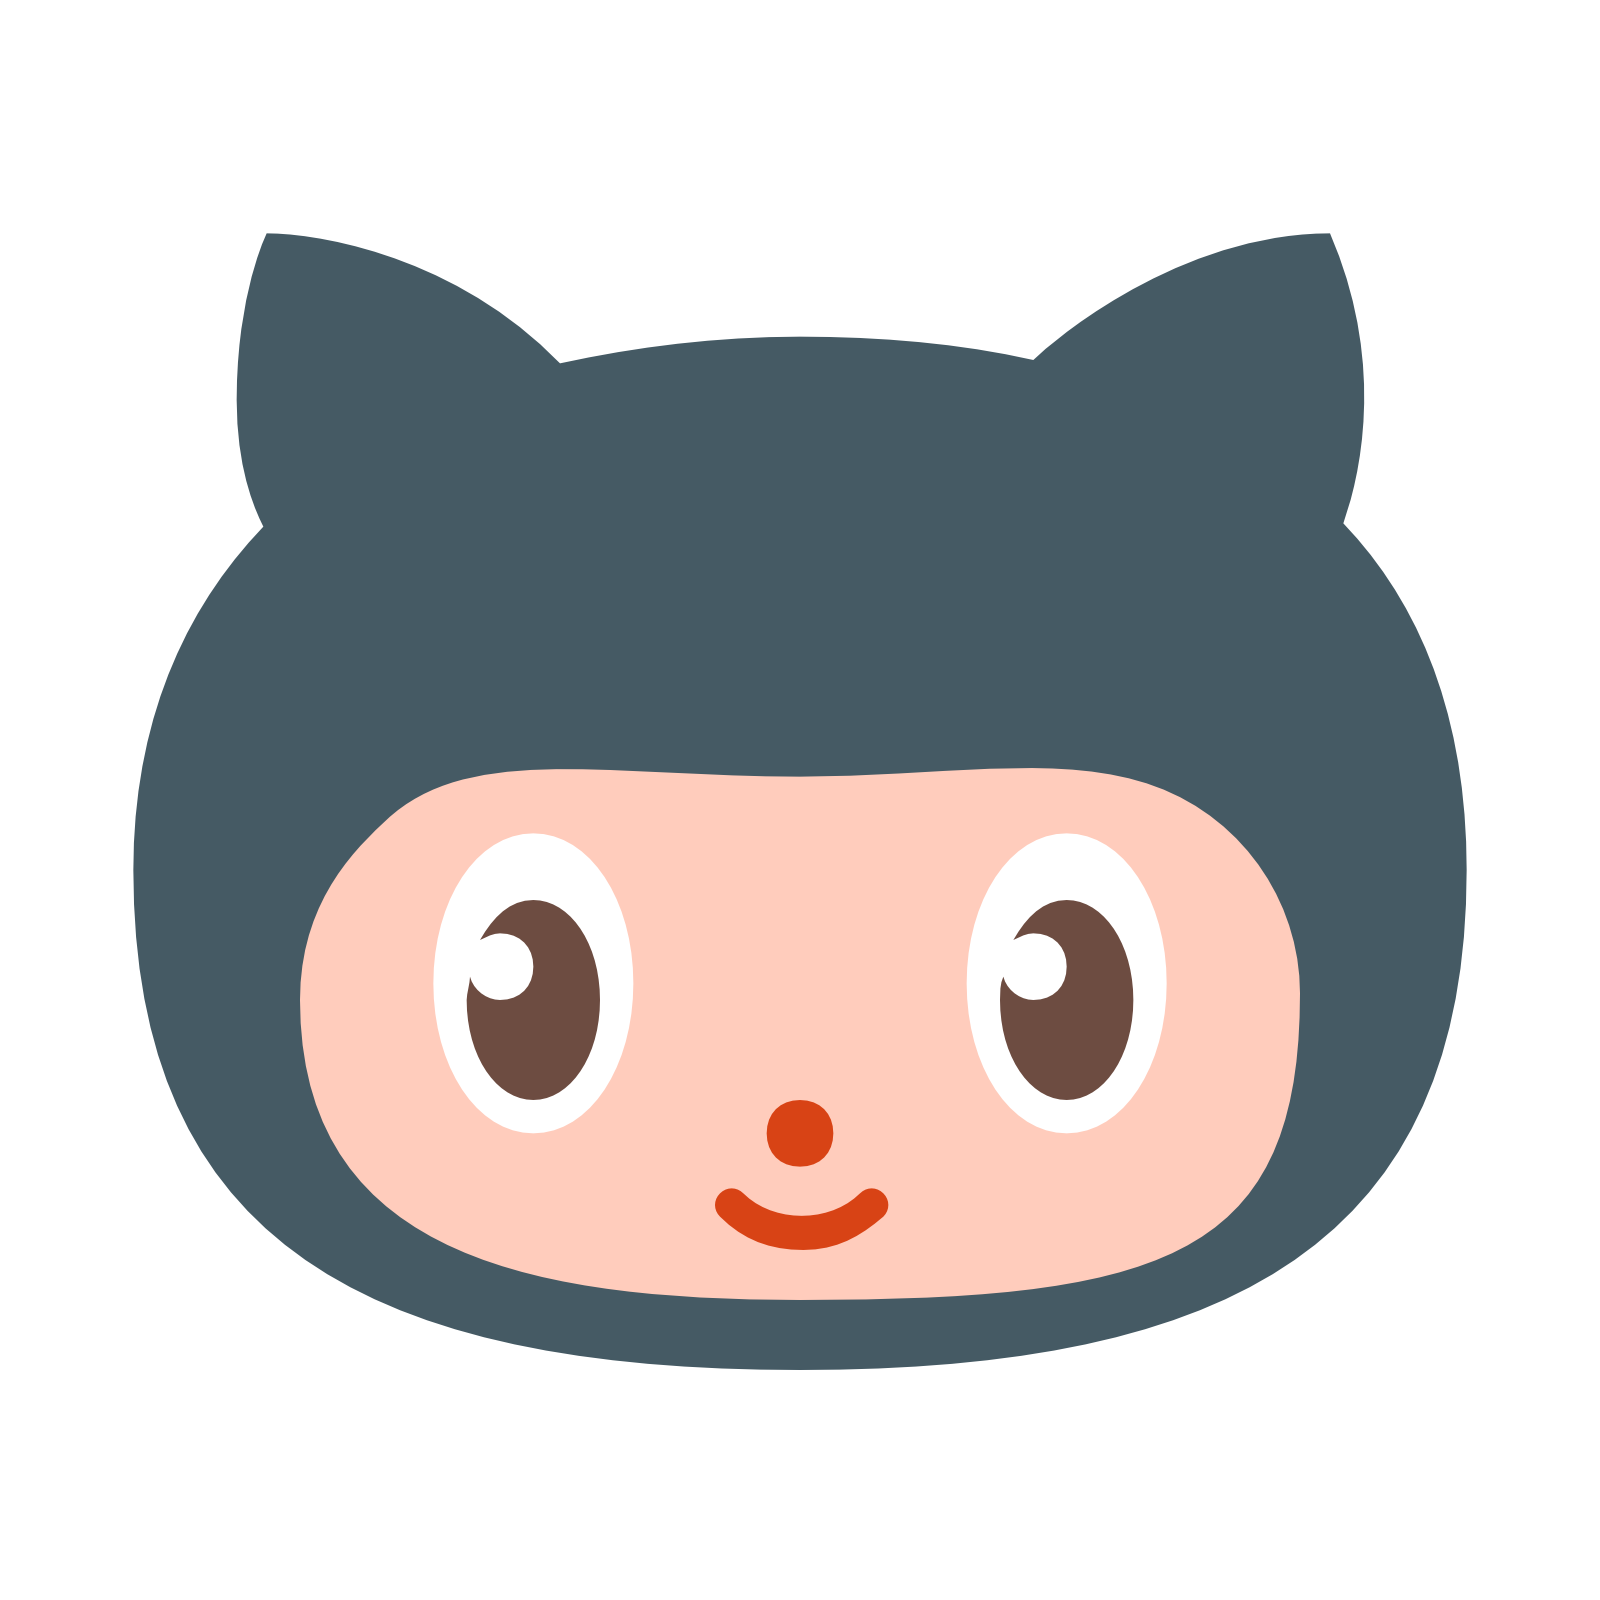 Octocat Icon. PNG 50 px - Github Octocat Logo PNG